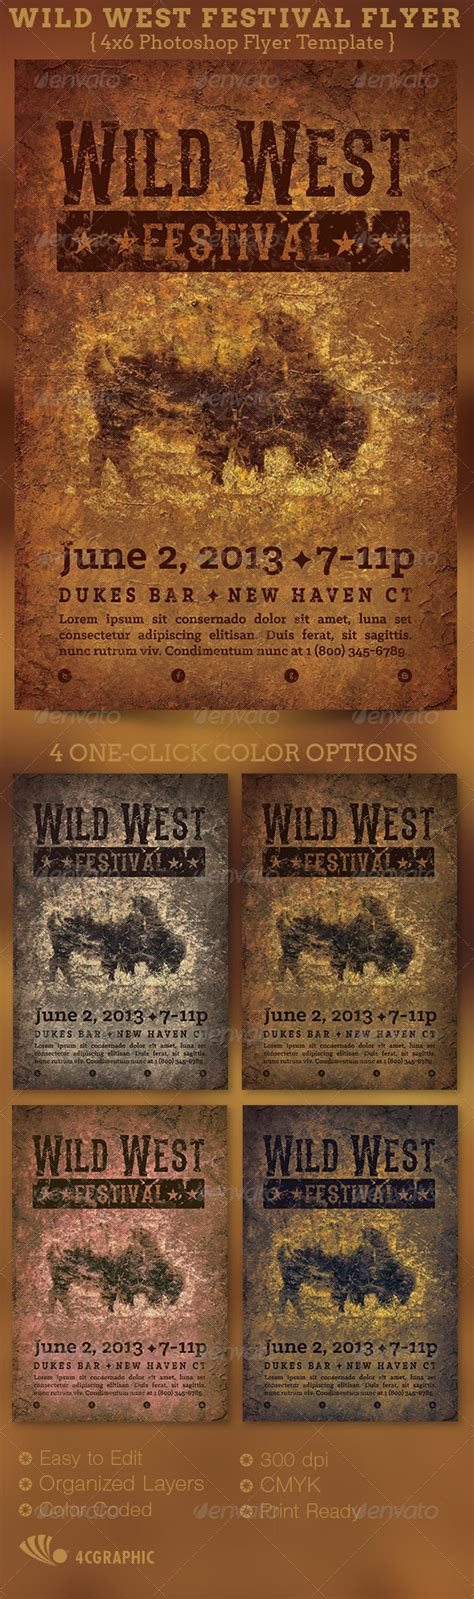 wild west festival flyer template graphicriver